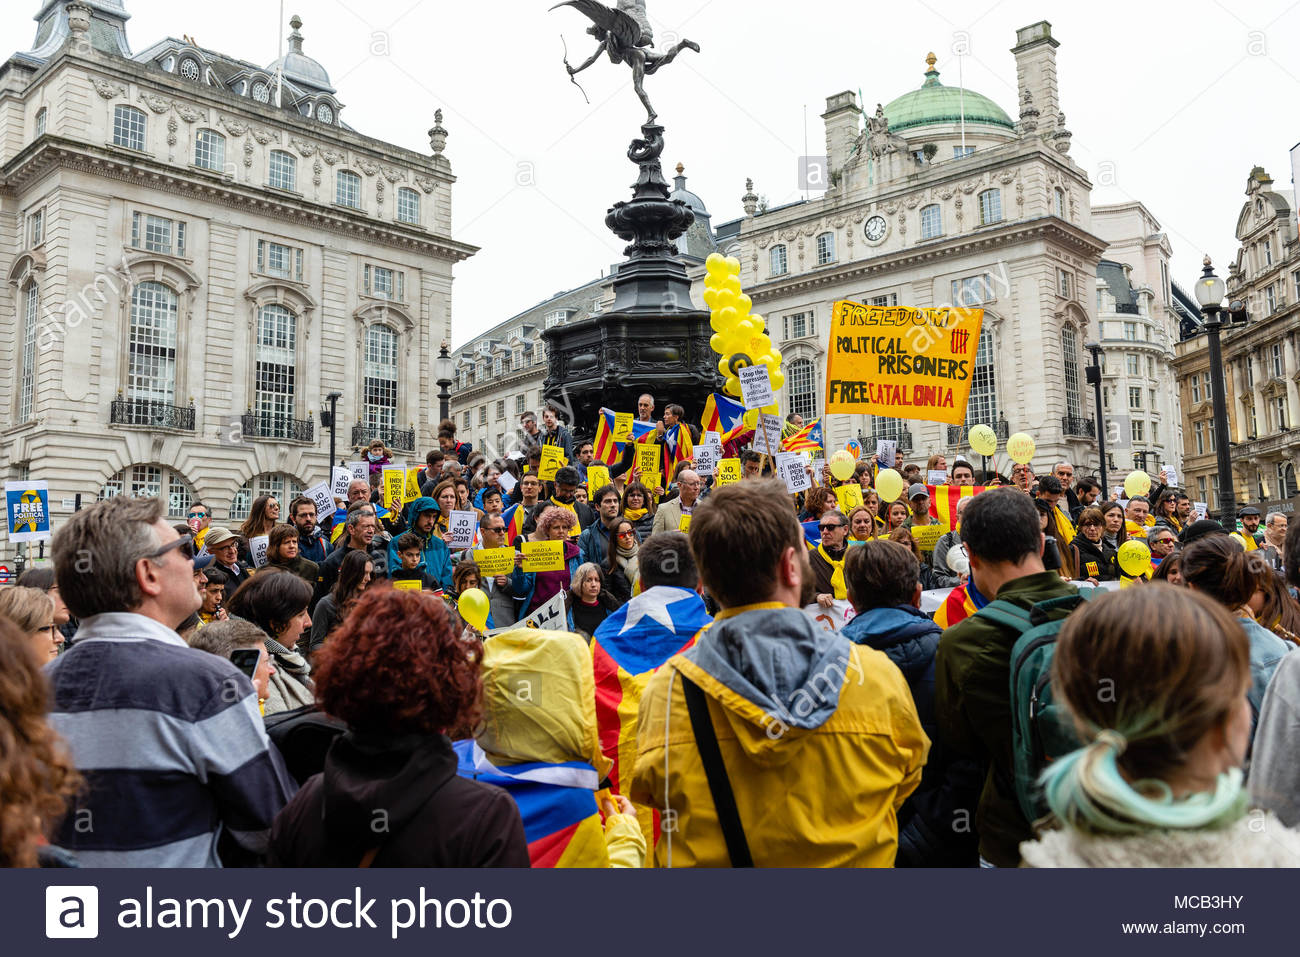 "London, England, 15th April, 2018. Catalonians gathered in London's Piccadilly to protest at what they see as Spanish repression, ""to defend the Catalan Republic, democracy and human rights"". David Nash/Alamy Live News - Stock Image"